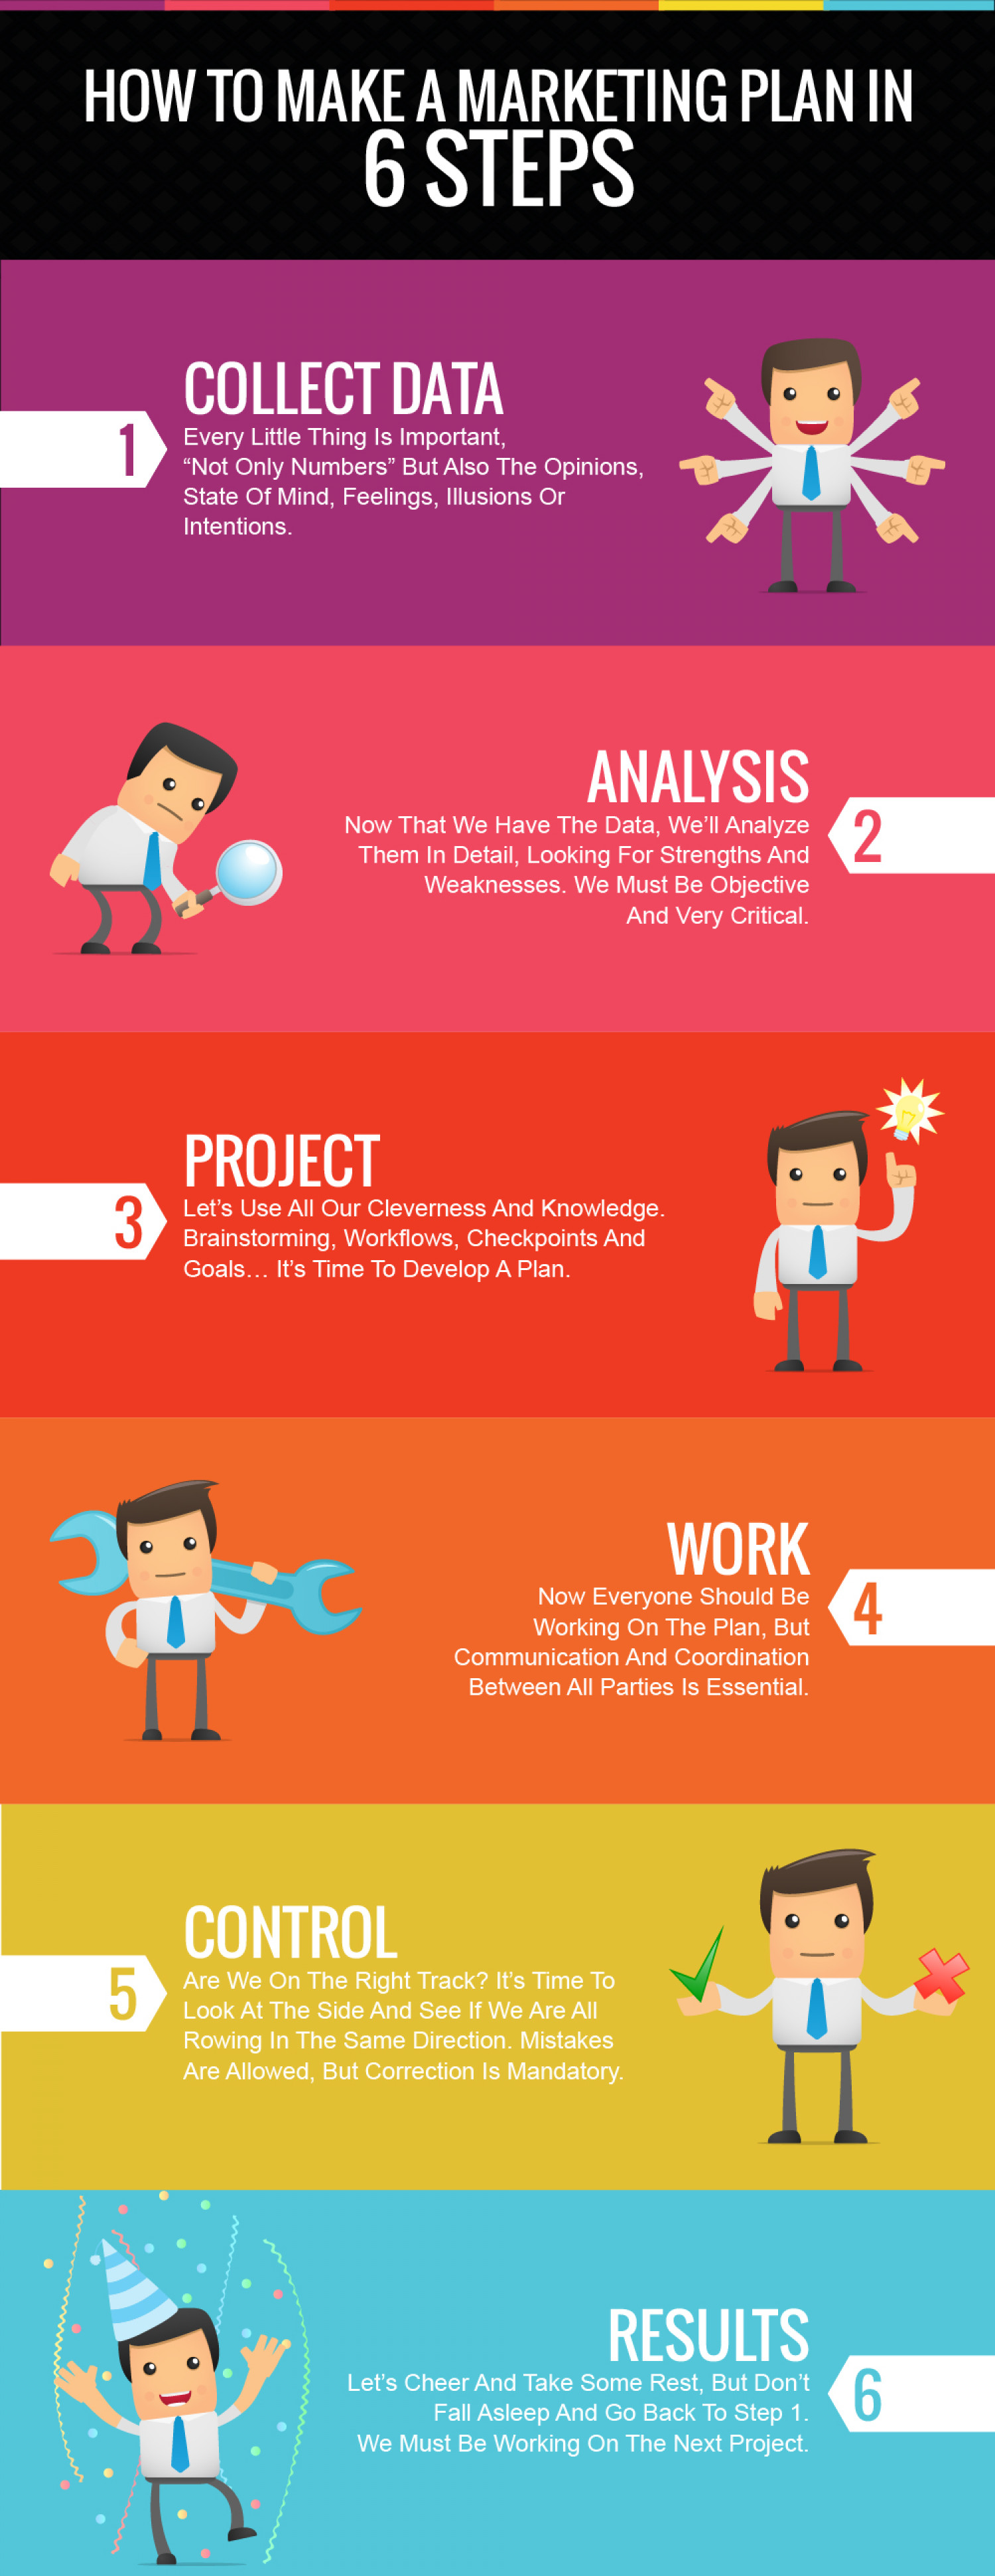 How Do You Create A Marketing Plan | How To Make A Marketing Plan In 6 Steps Visual Ly